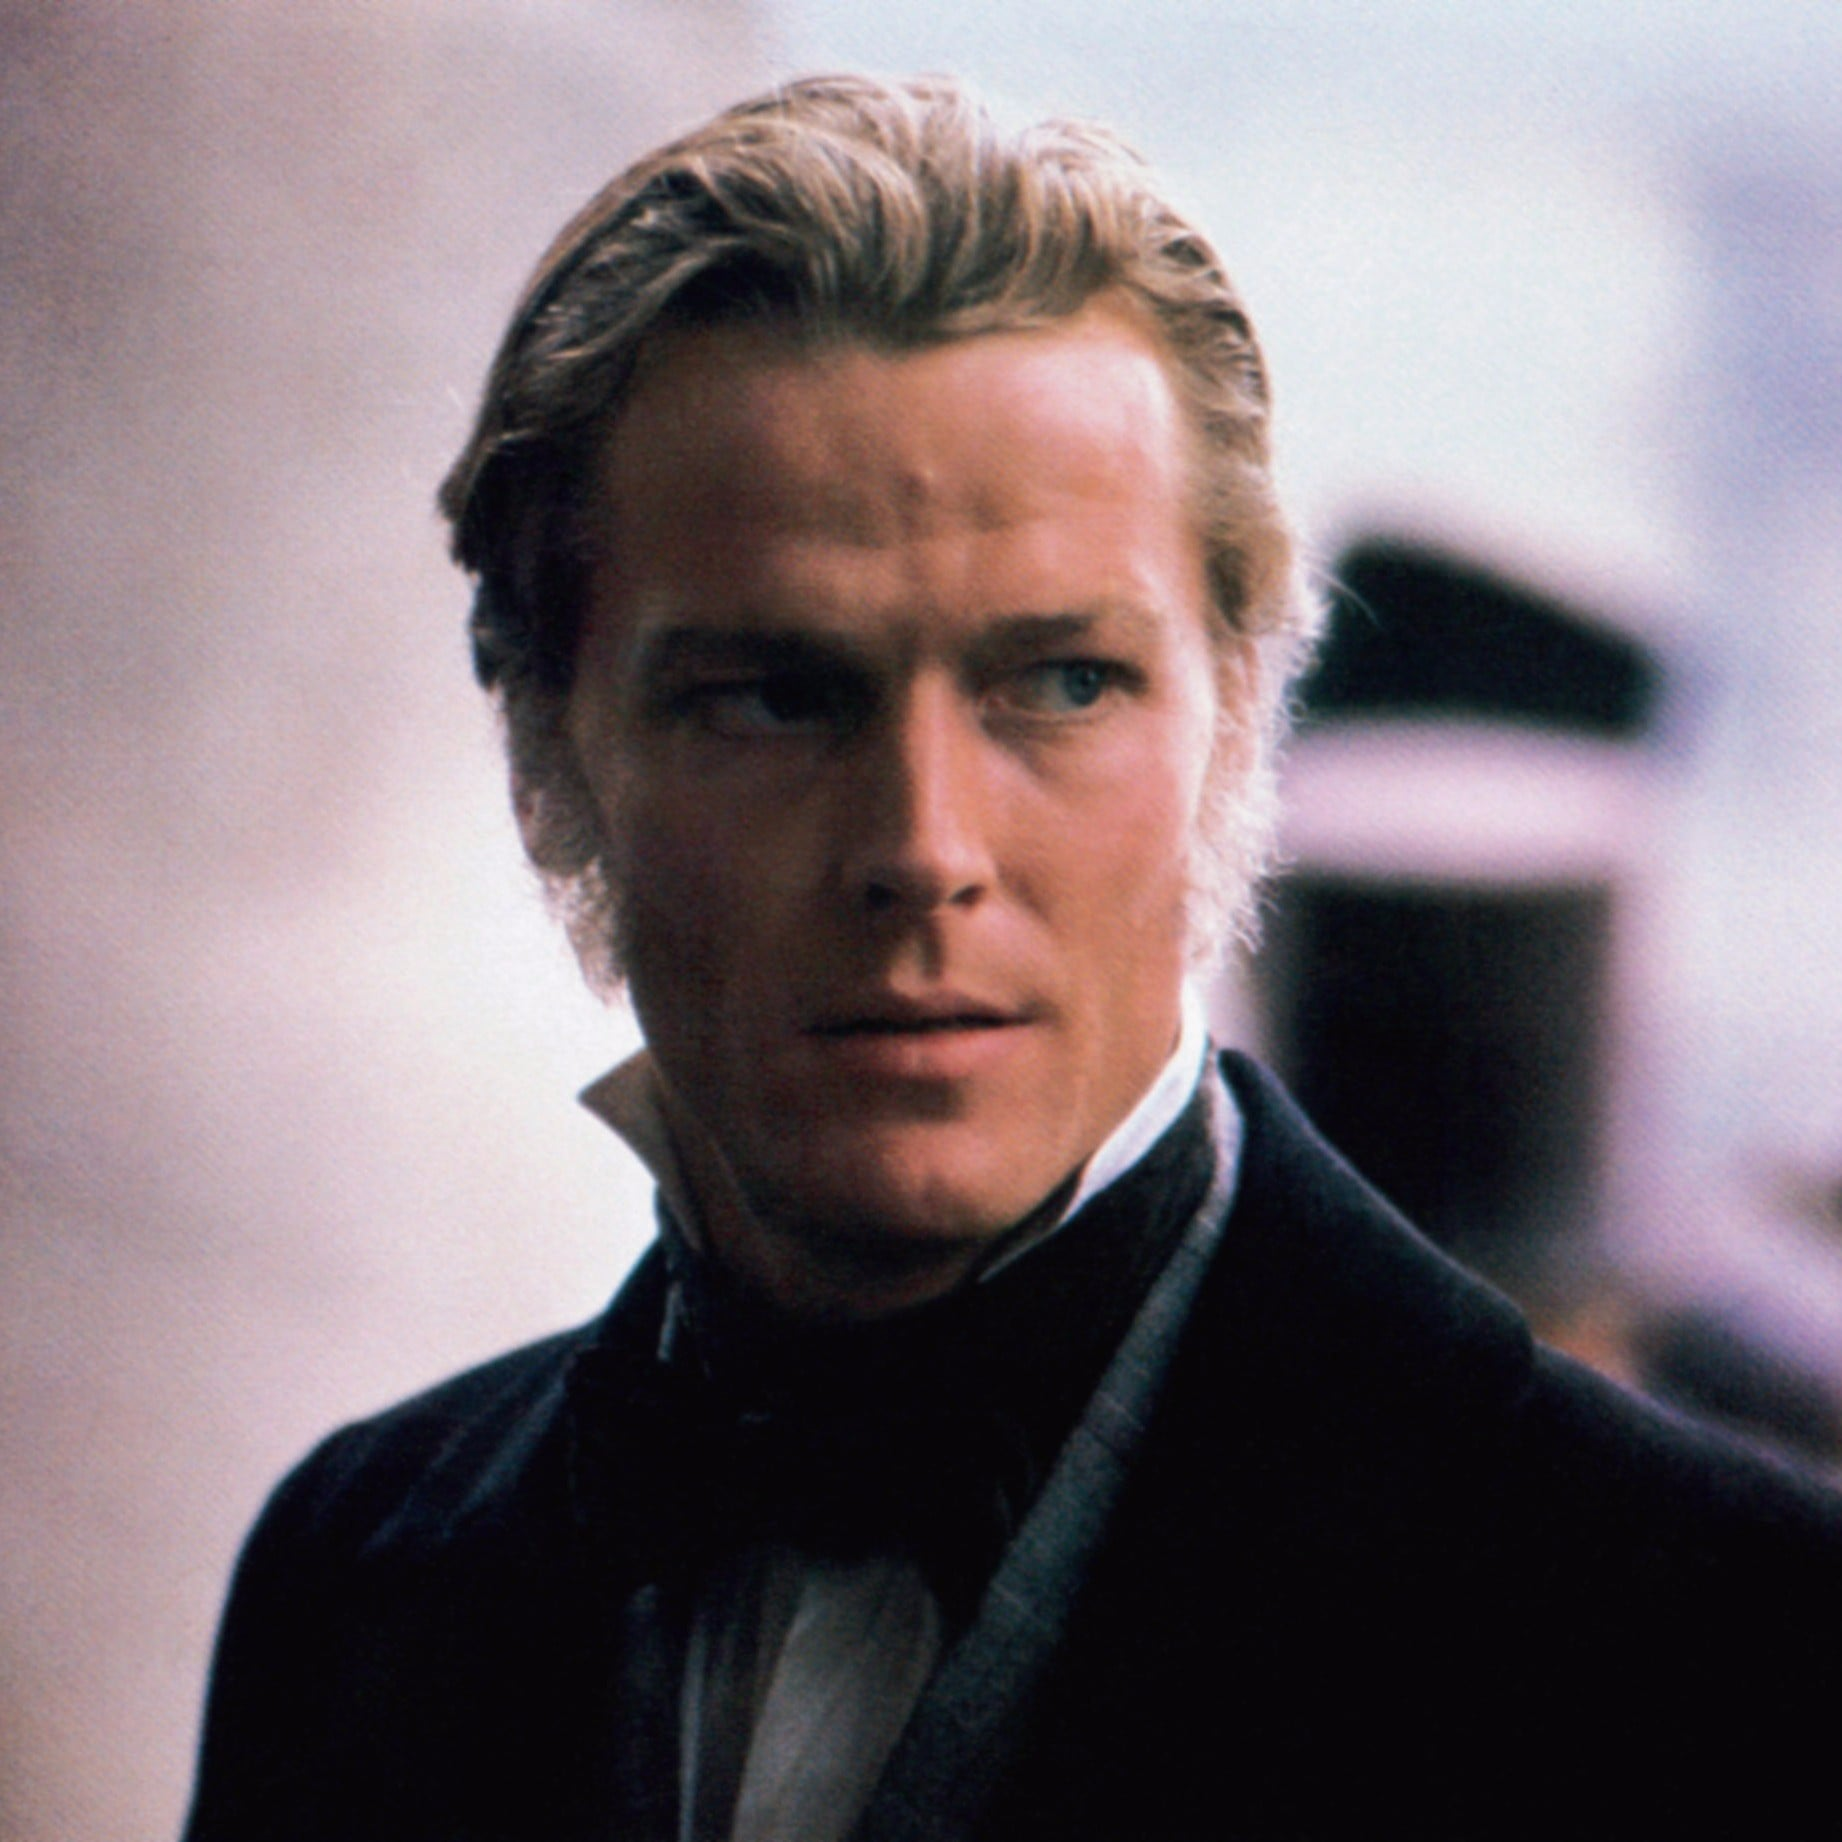 Iain Glen The actor in Fools of Fortune in 1990 What Did Iain Glen Look